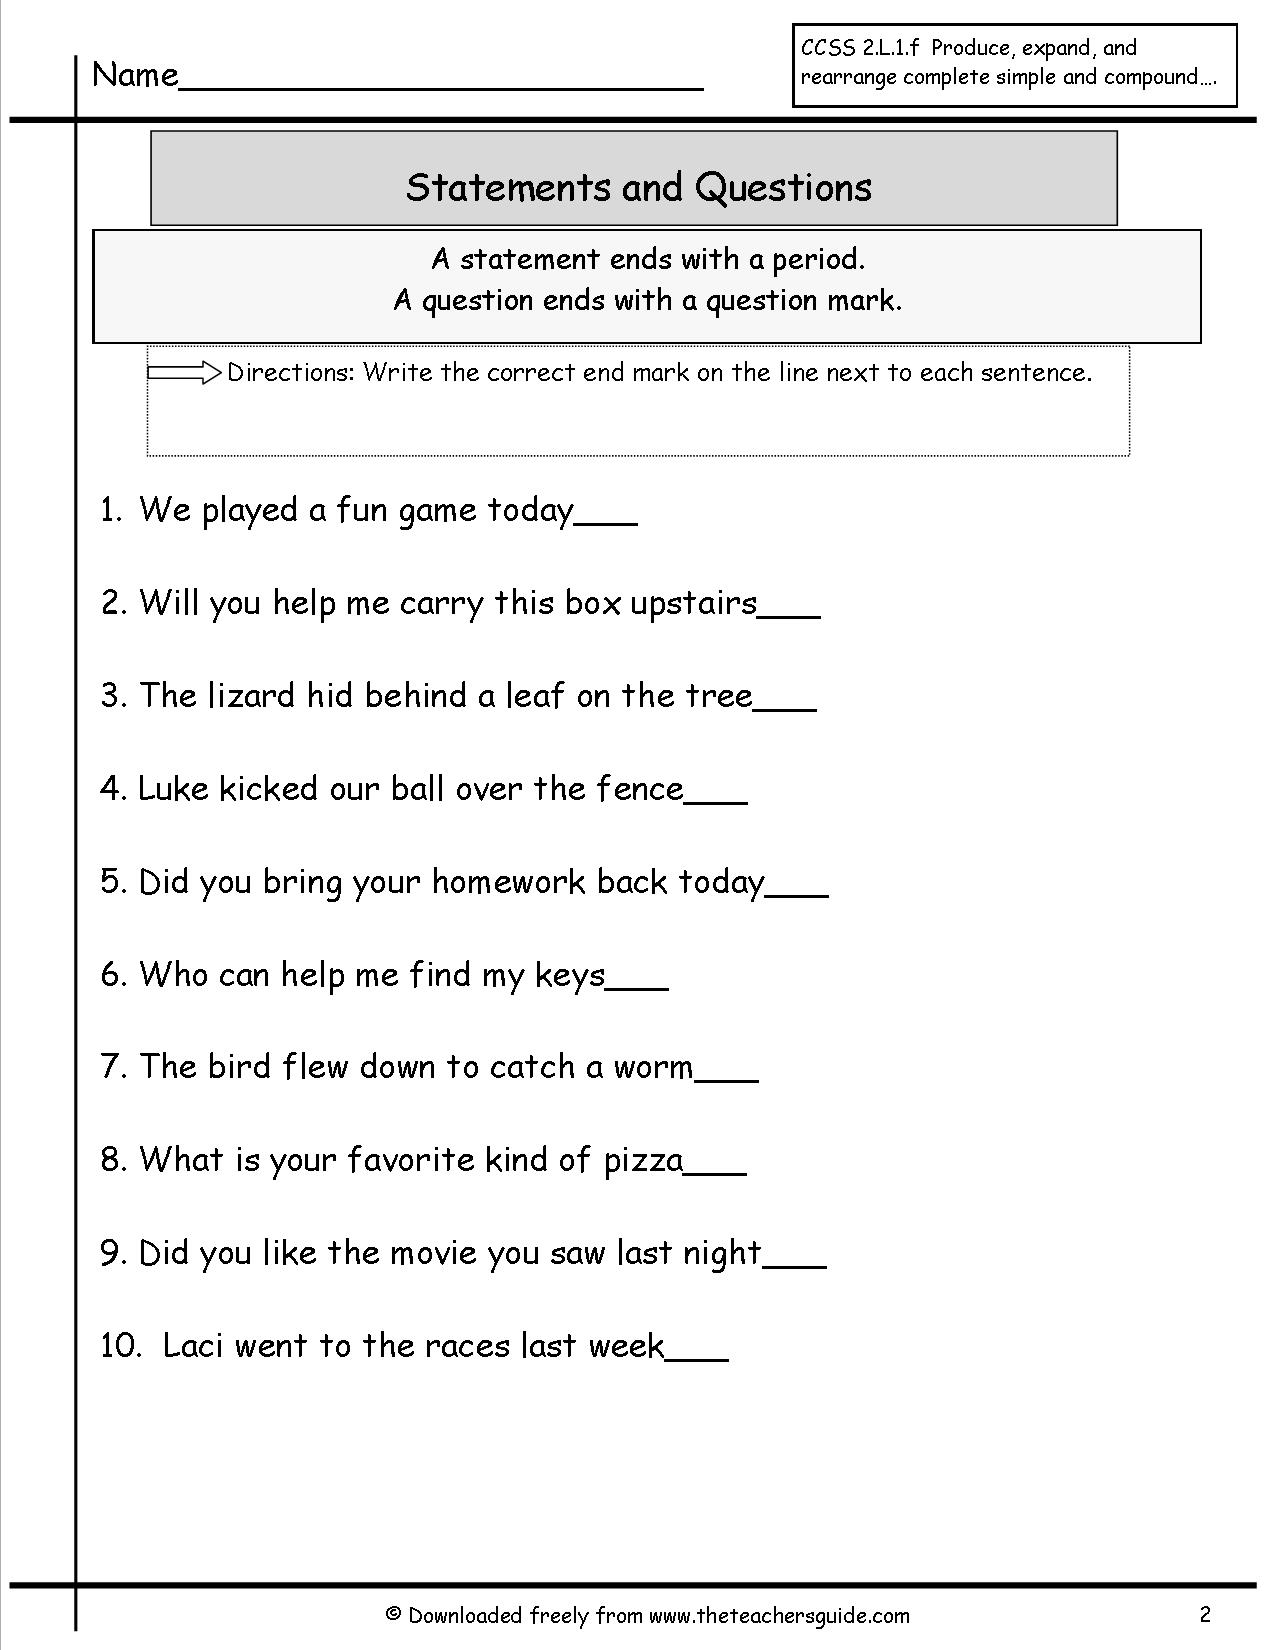 16 Best Images Of Create A Sentence Worksheets Printable